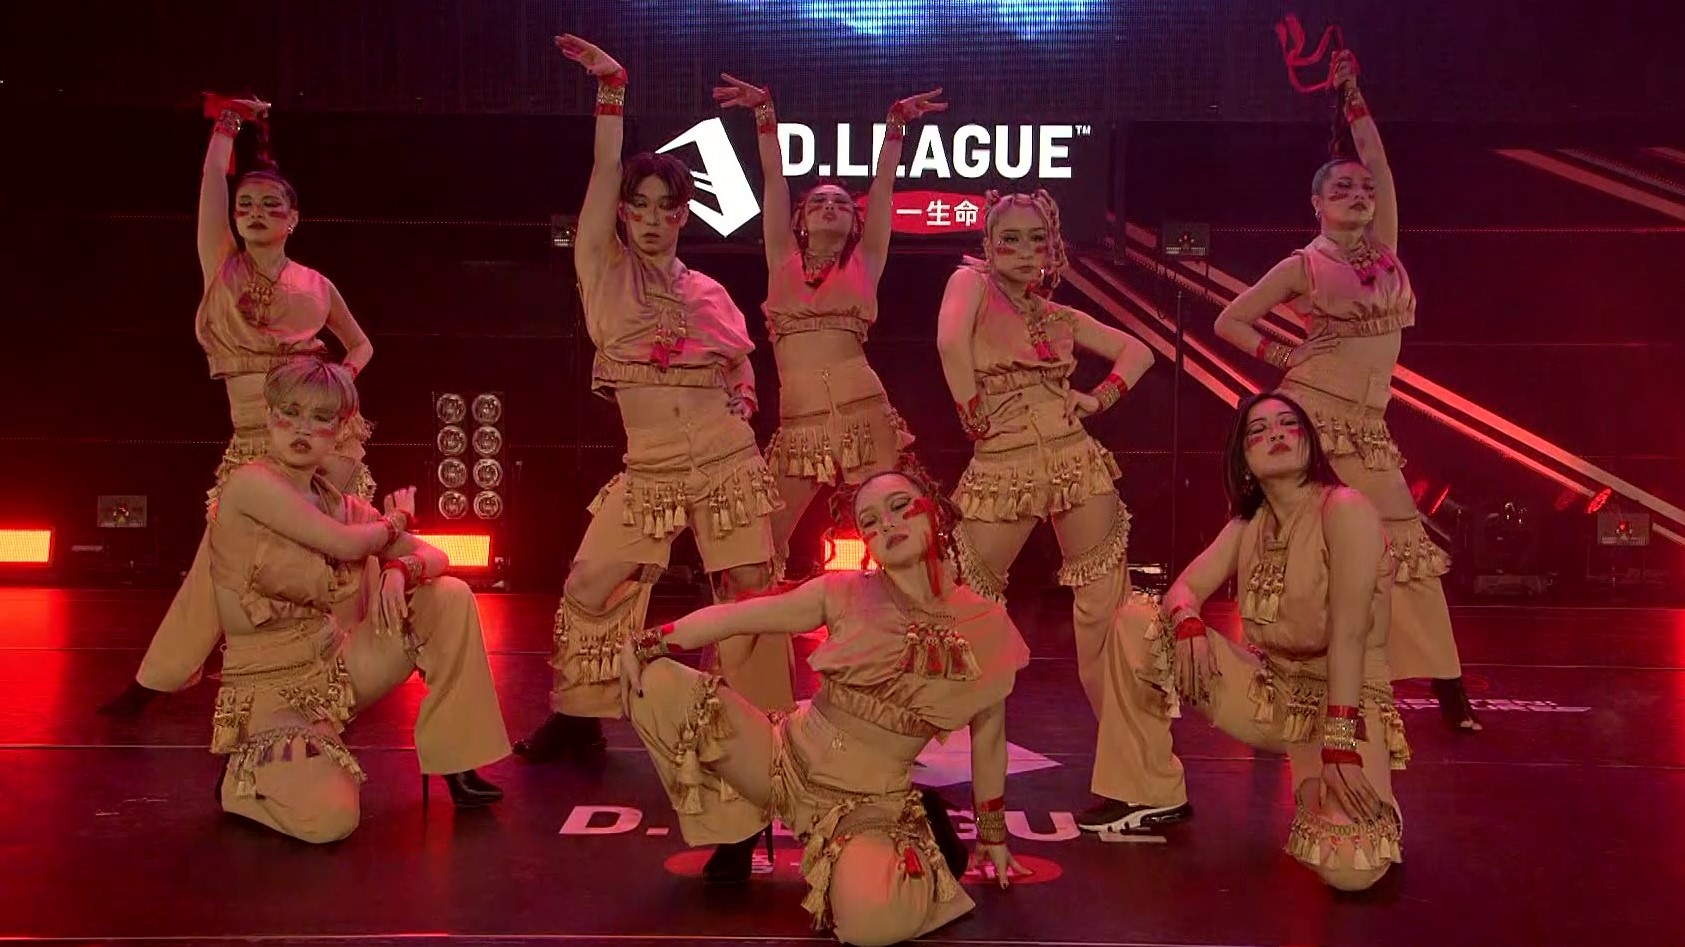 プロダンスリーグ【D.LEAGUE】/ Benefit one MONOLIZ 第一生命 D.LEAGUE 20-21 ROUND.7・SHOW 8